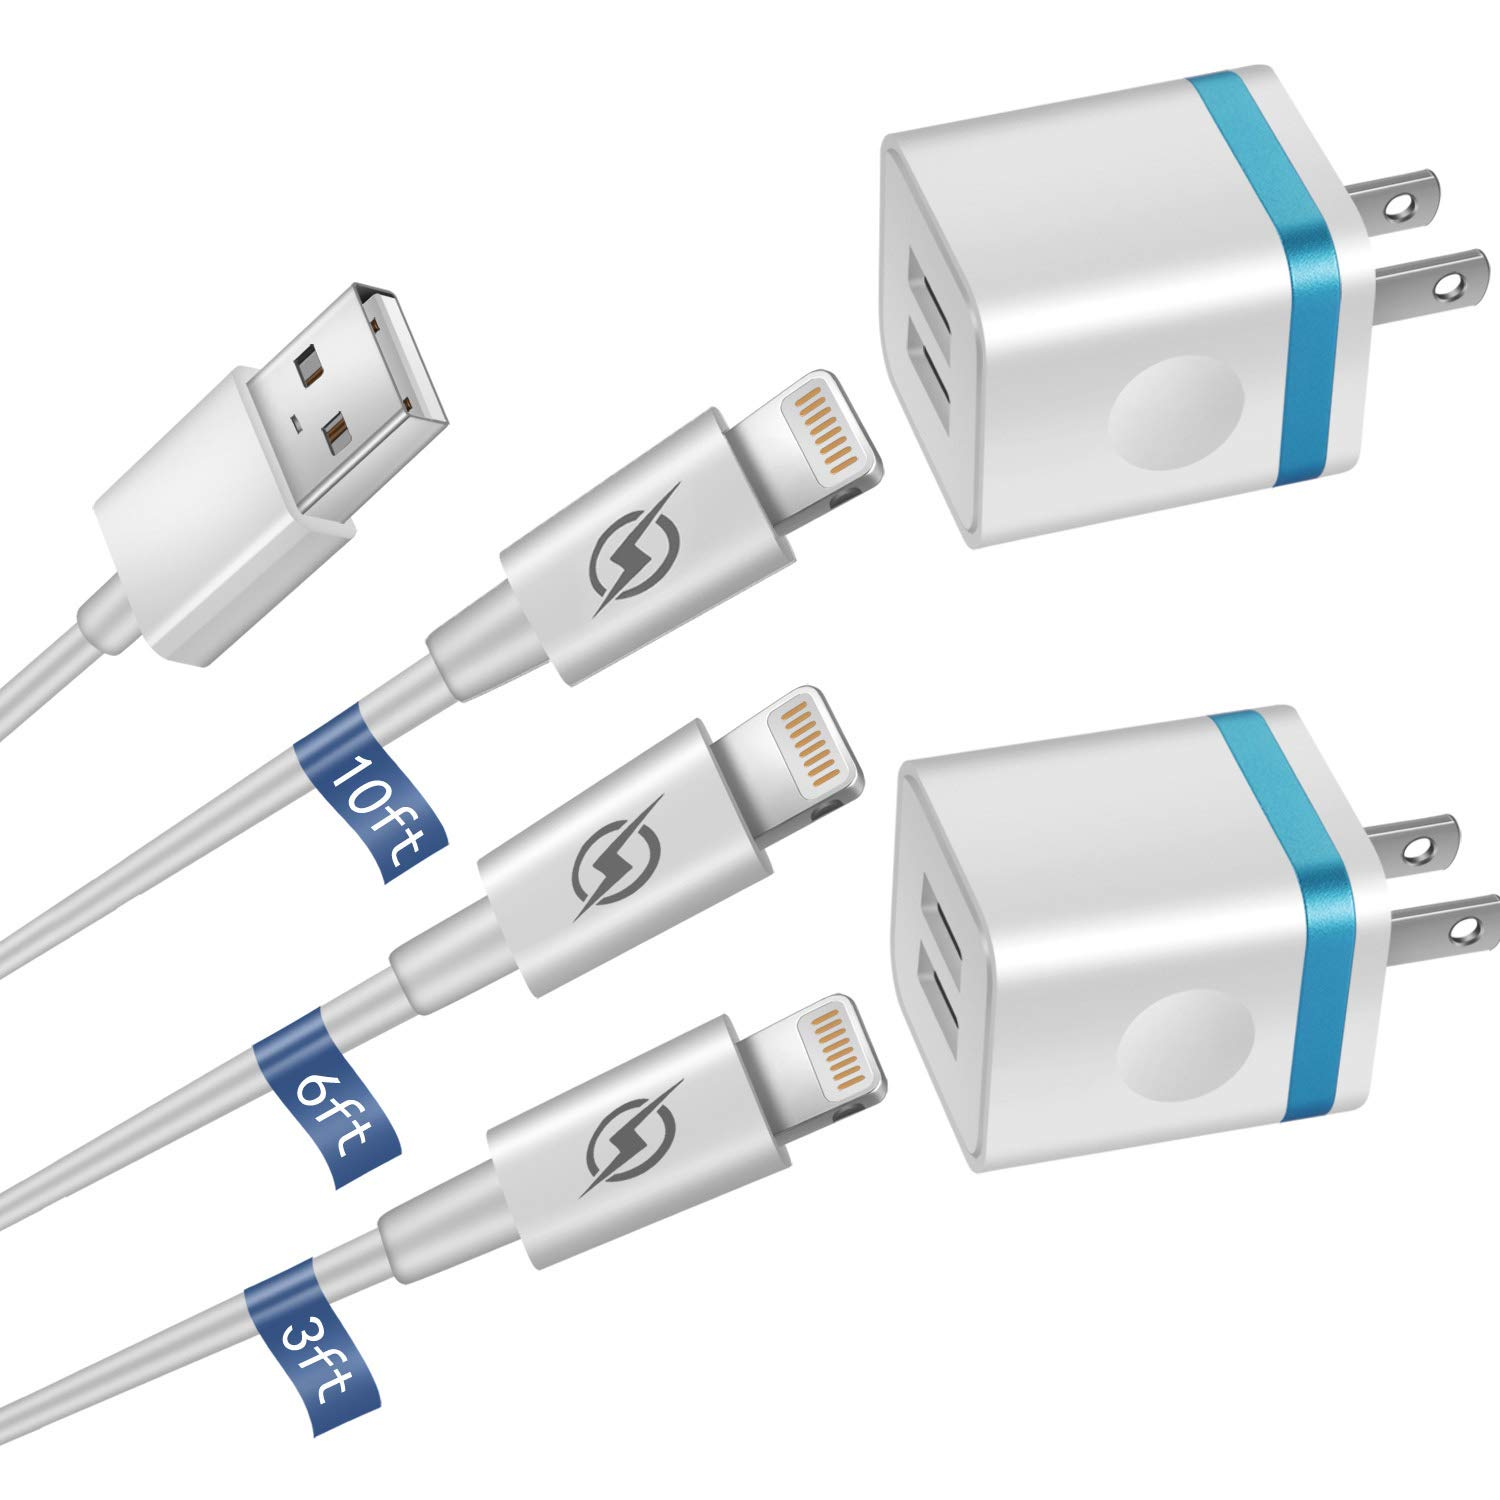 LOOGGO [5-Pack] Phone Charger, (10FT+6FT+3FT) Extra Long Fast Charging & Sync Cable with 2 X Dual Port USB Wall Charger Plug Adapter Compatible with iPhone Xs Max XR X 8 7 6S 6 Plus SE 5S iPad by LOOGGO